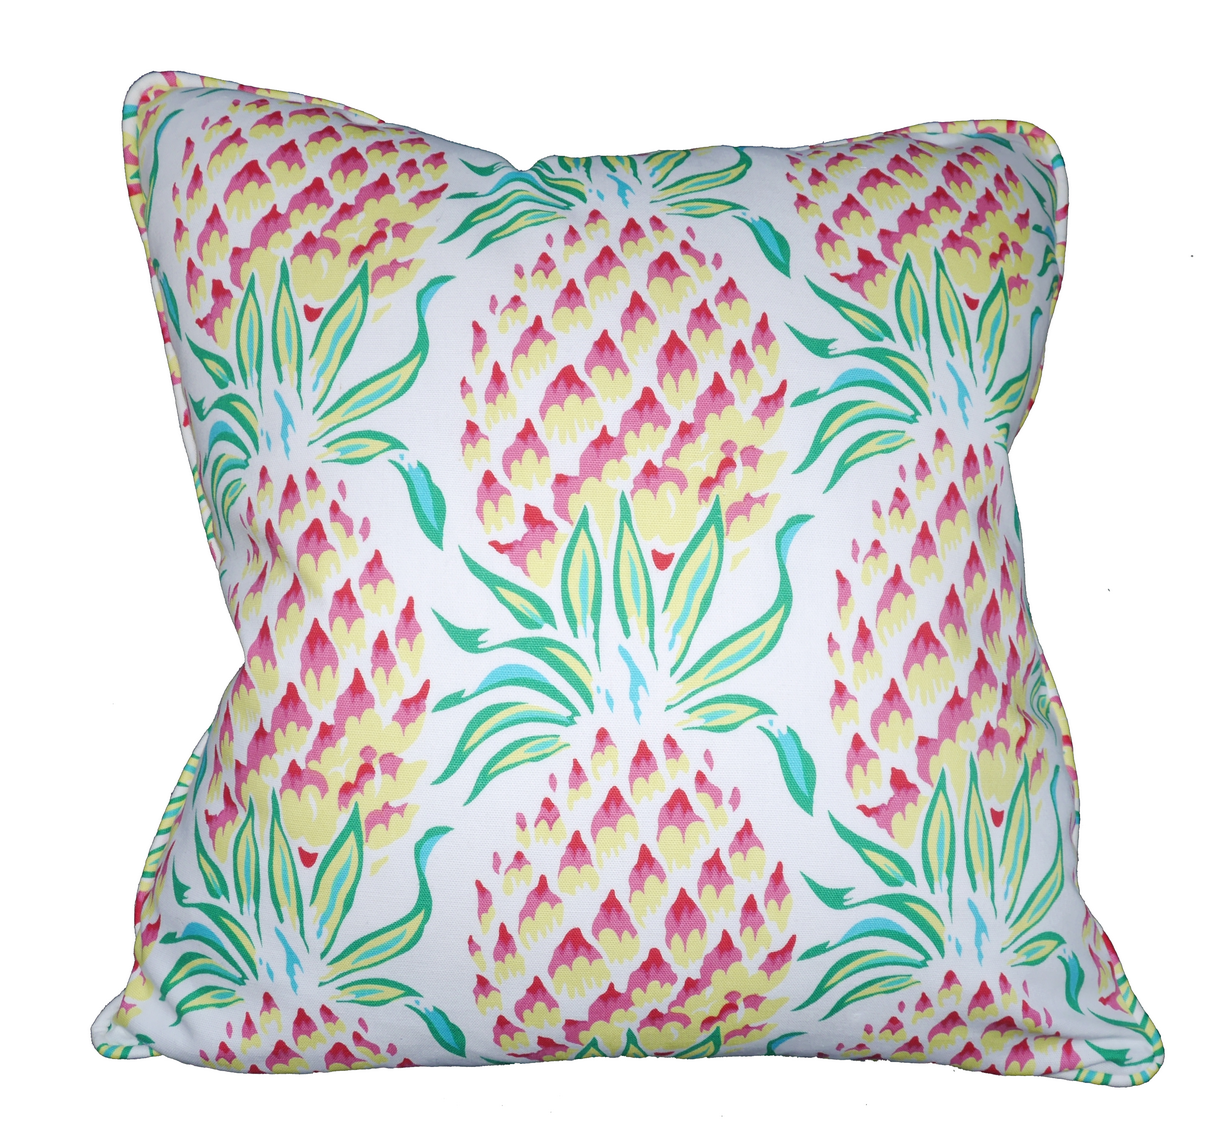 Lanai Multi Throw Pillow Cover - Carleton Varney